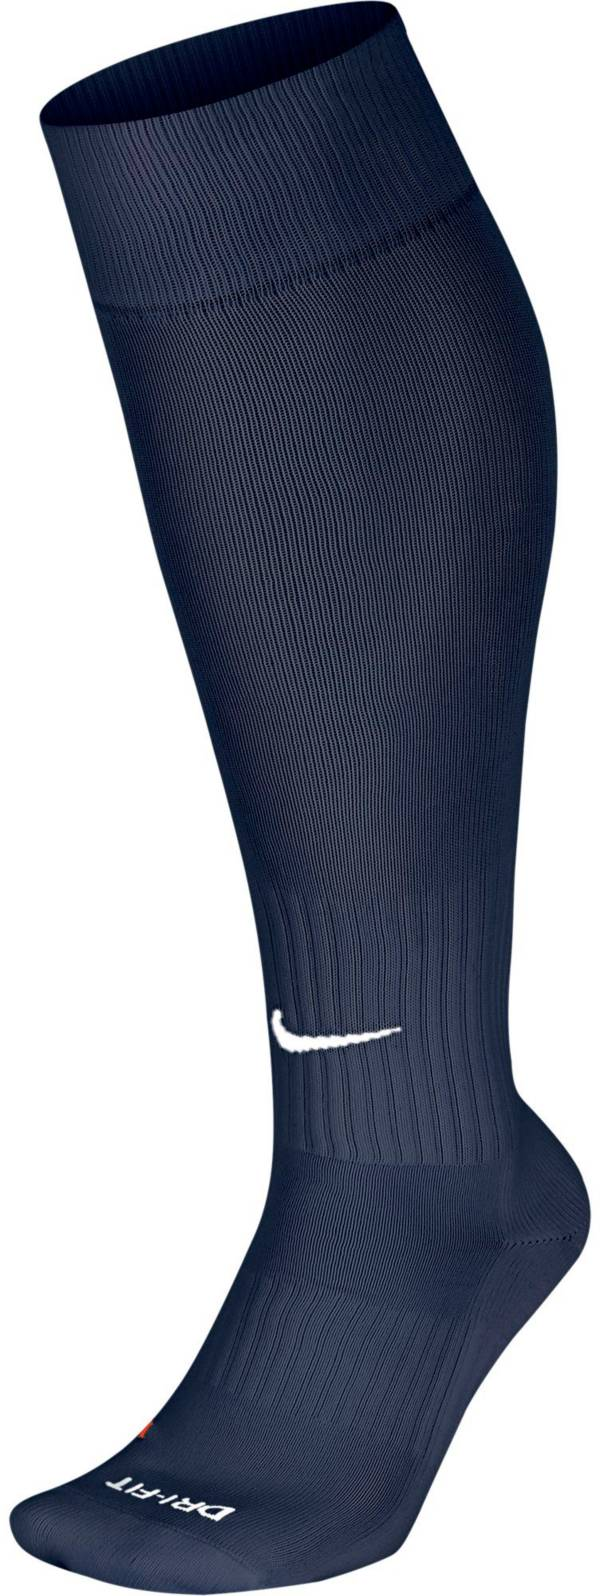 Nike Classic Soccer Socks Dick S Sporting Goods